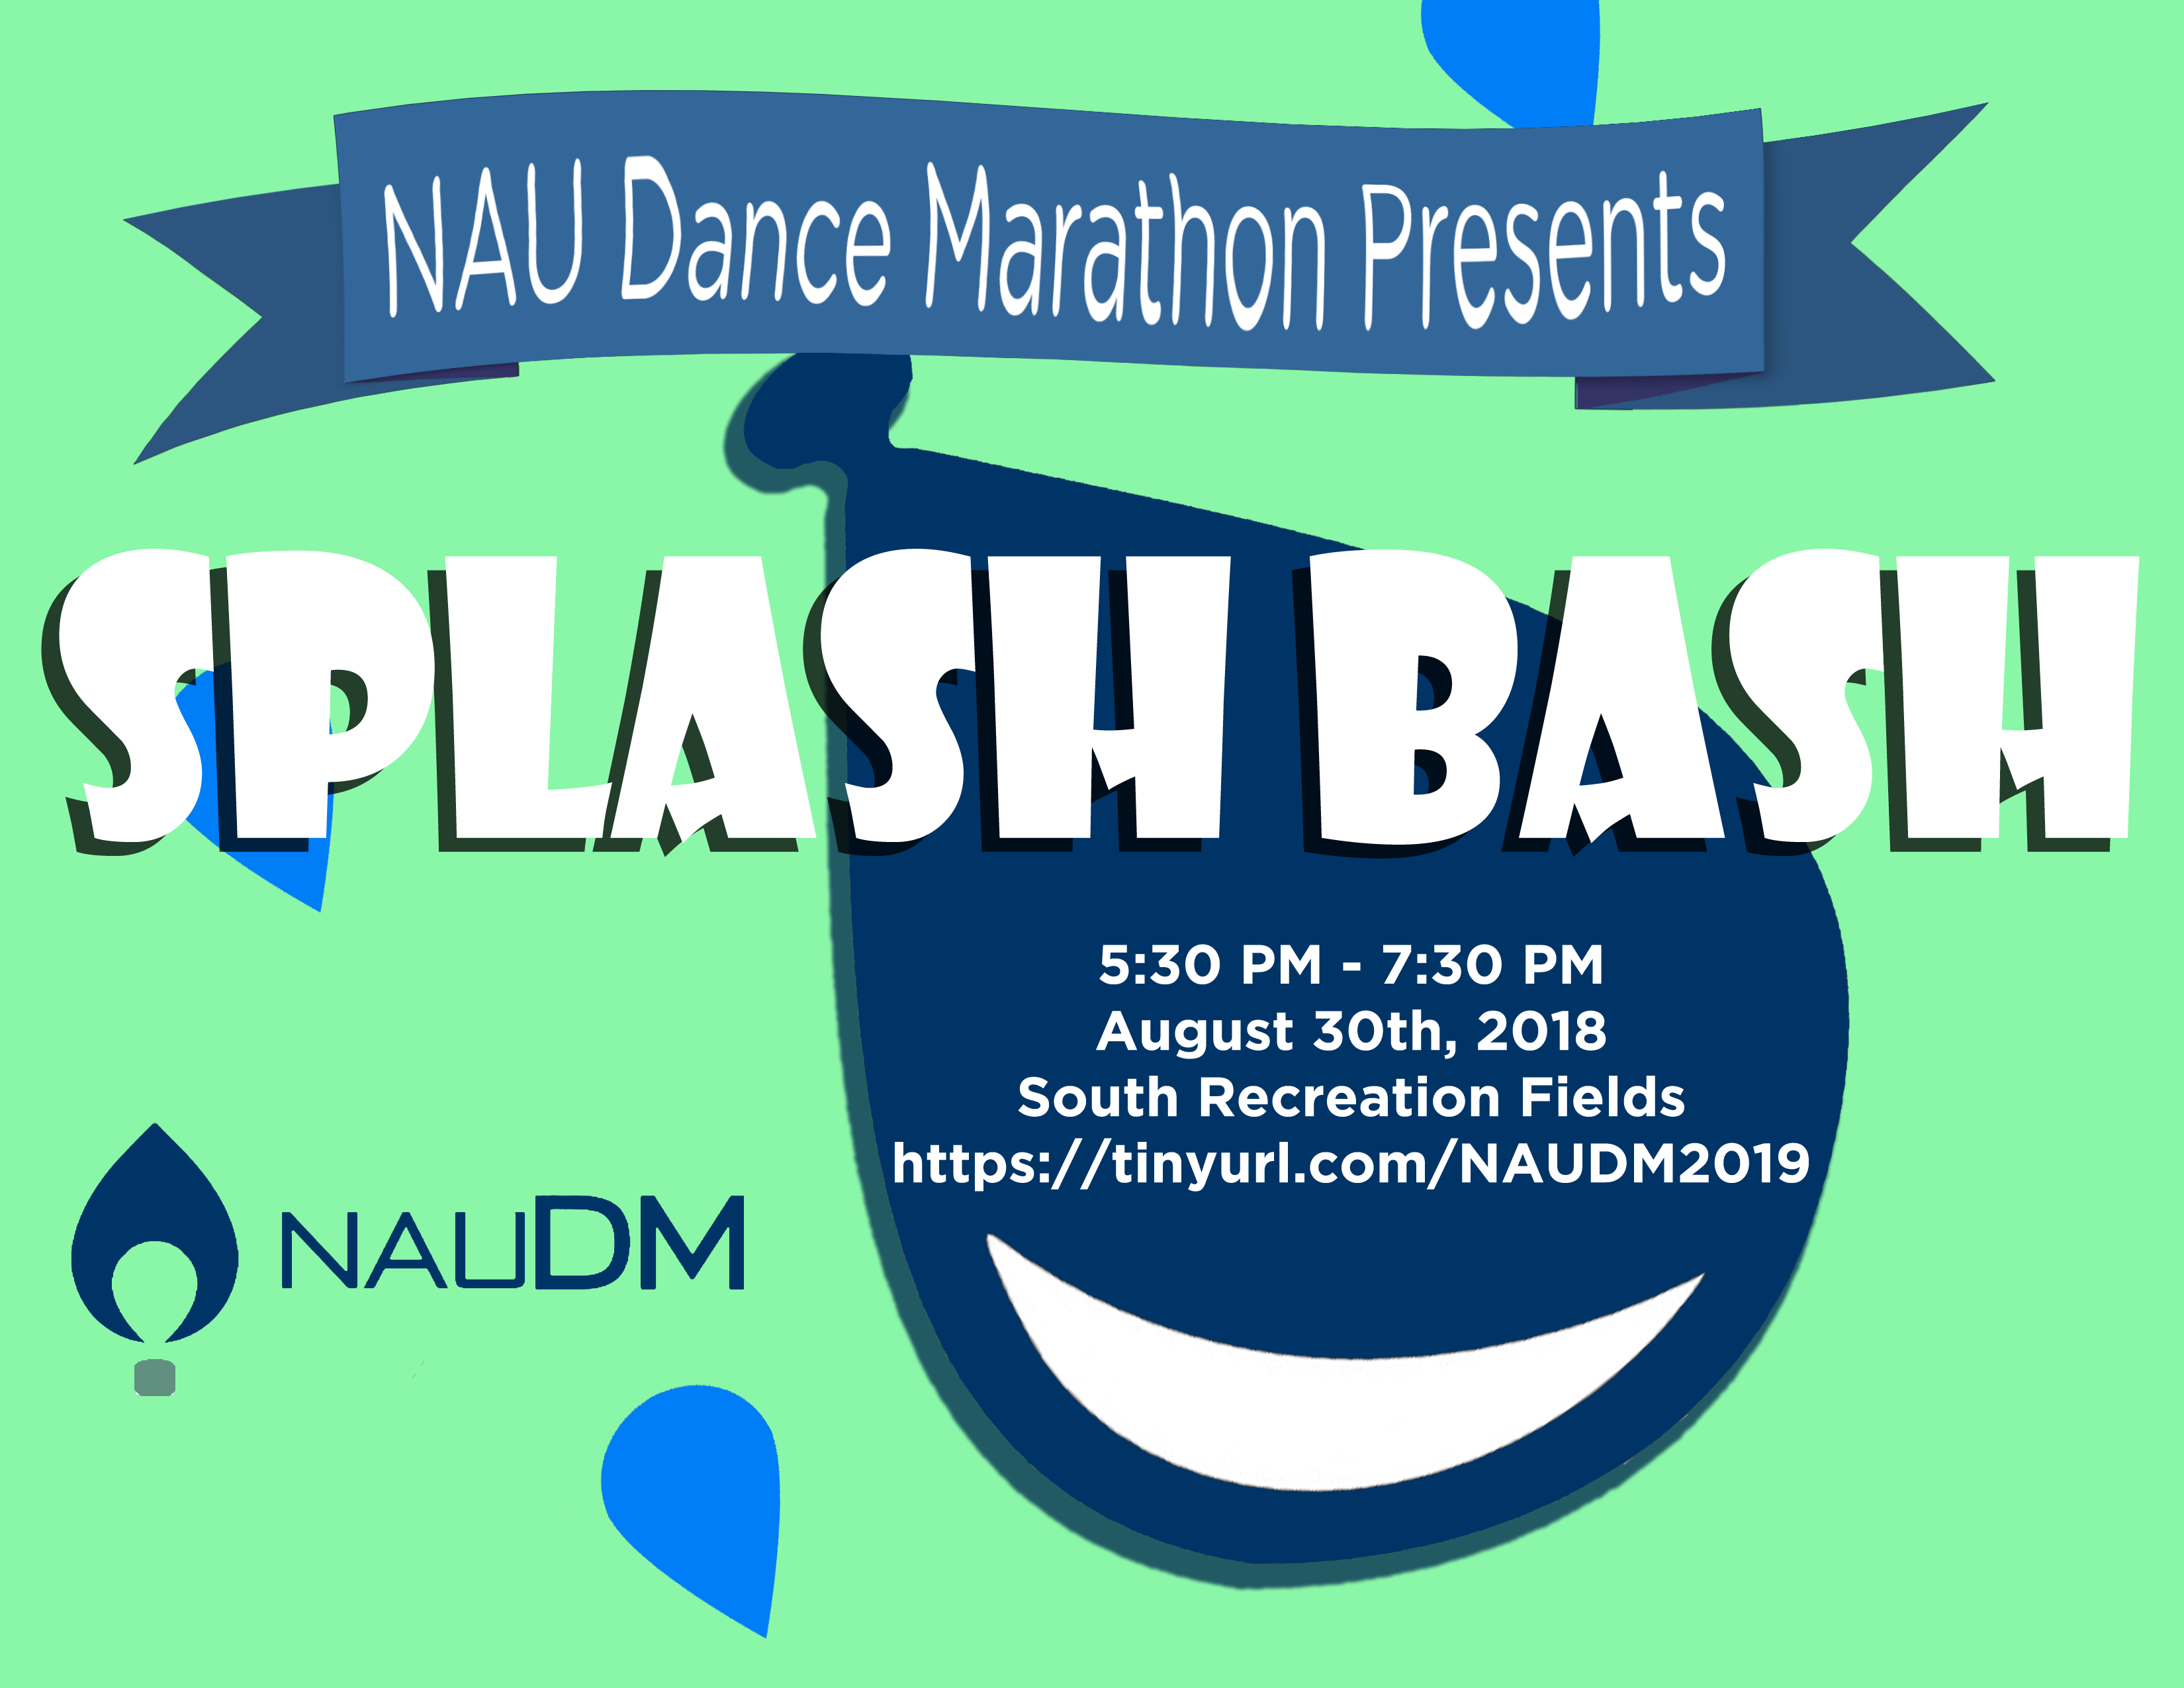 Splash Bash! by NAU DM